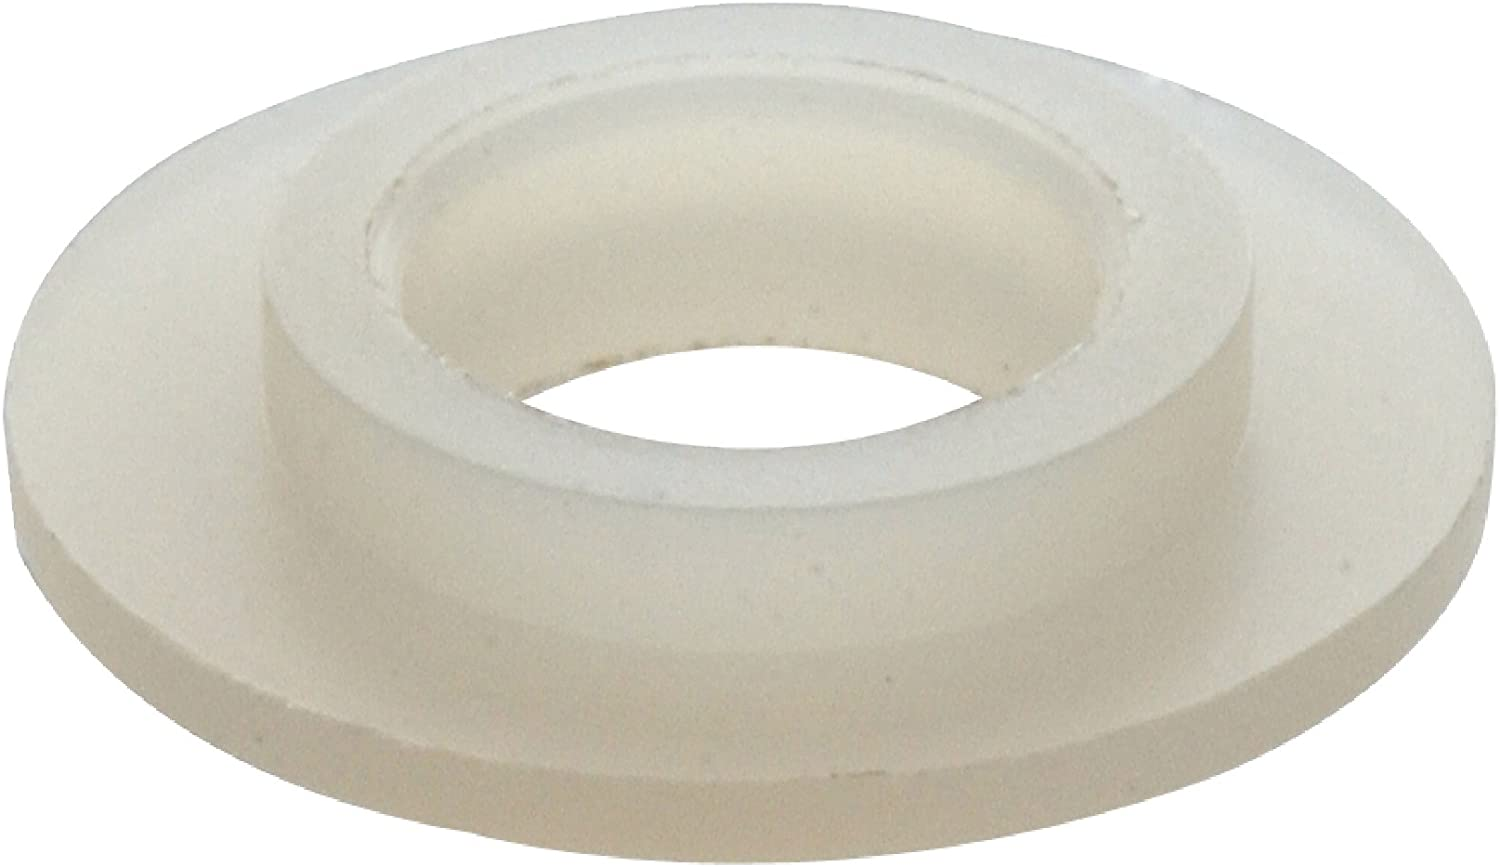 The Hillman Group 58207 0.750 x 0.385-Inch Nylon Shoulder Washer, 15-Pack